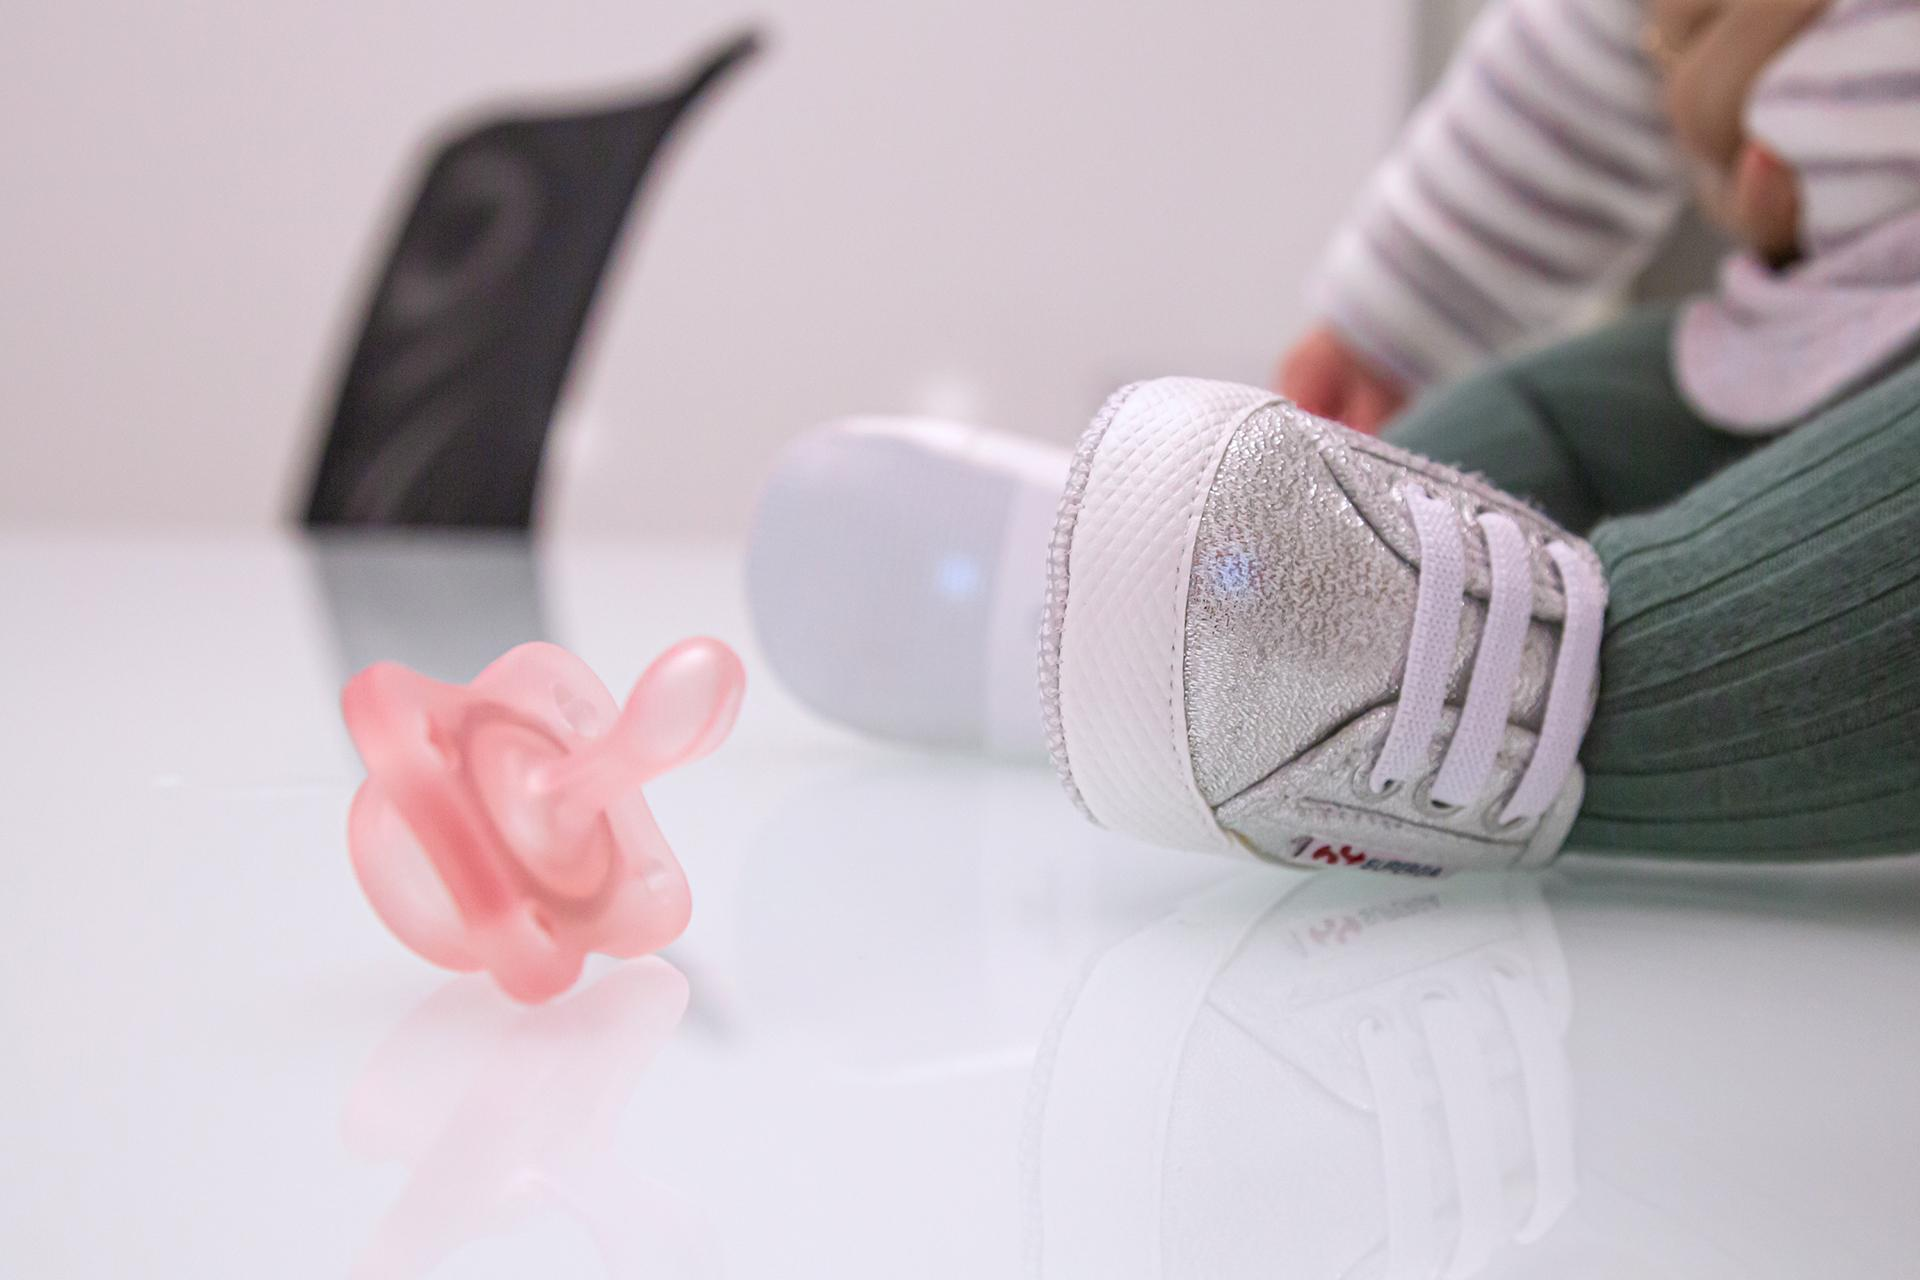 designing a minimalist soother